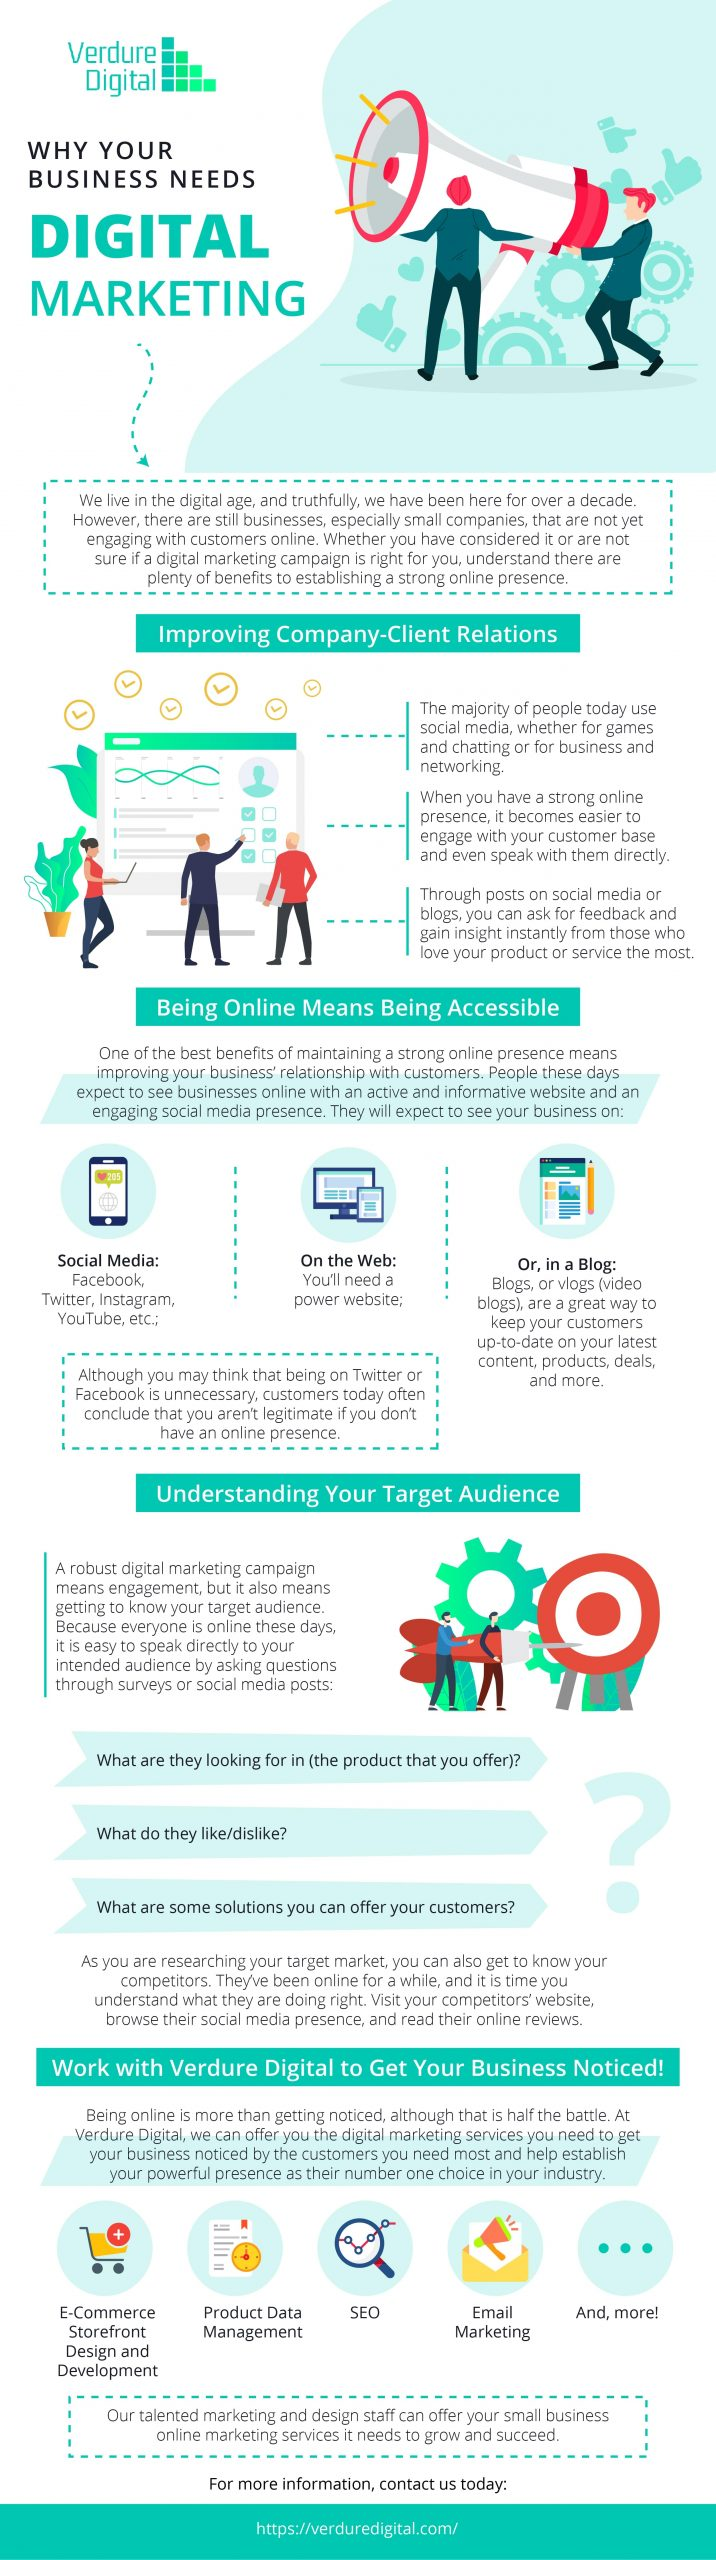 Why Your Business Needs Digital Marketing